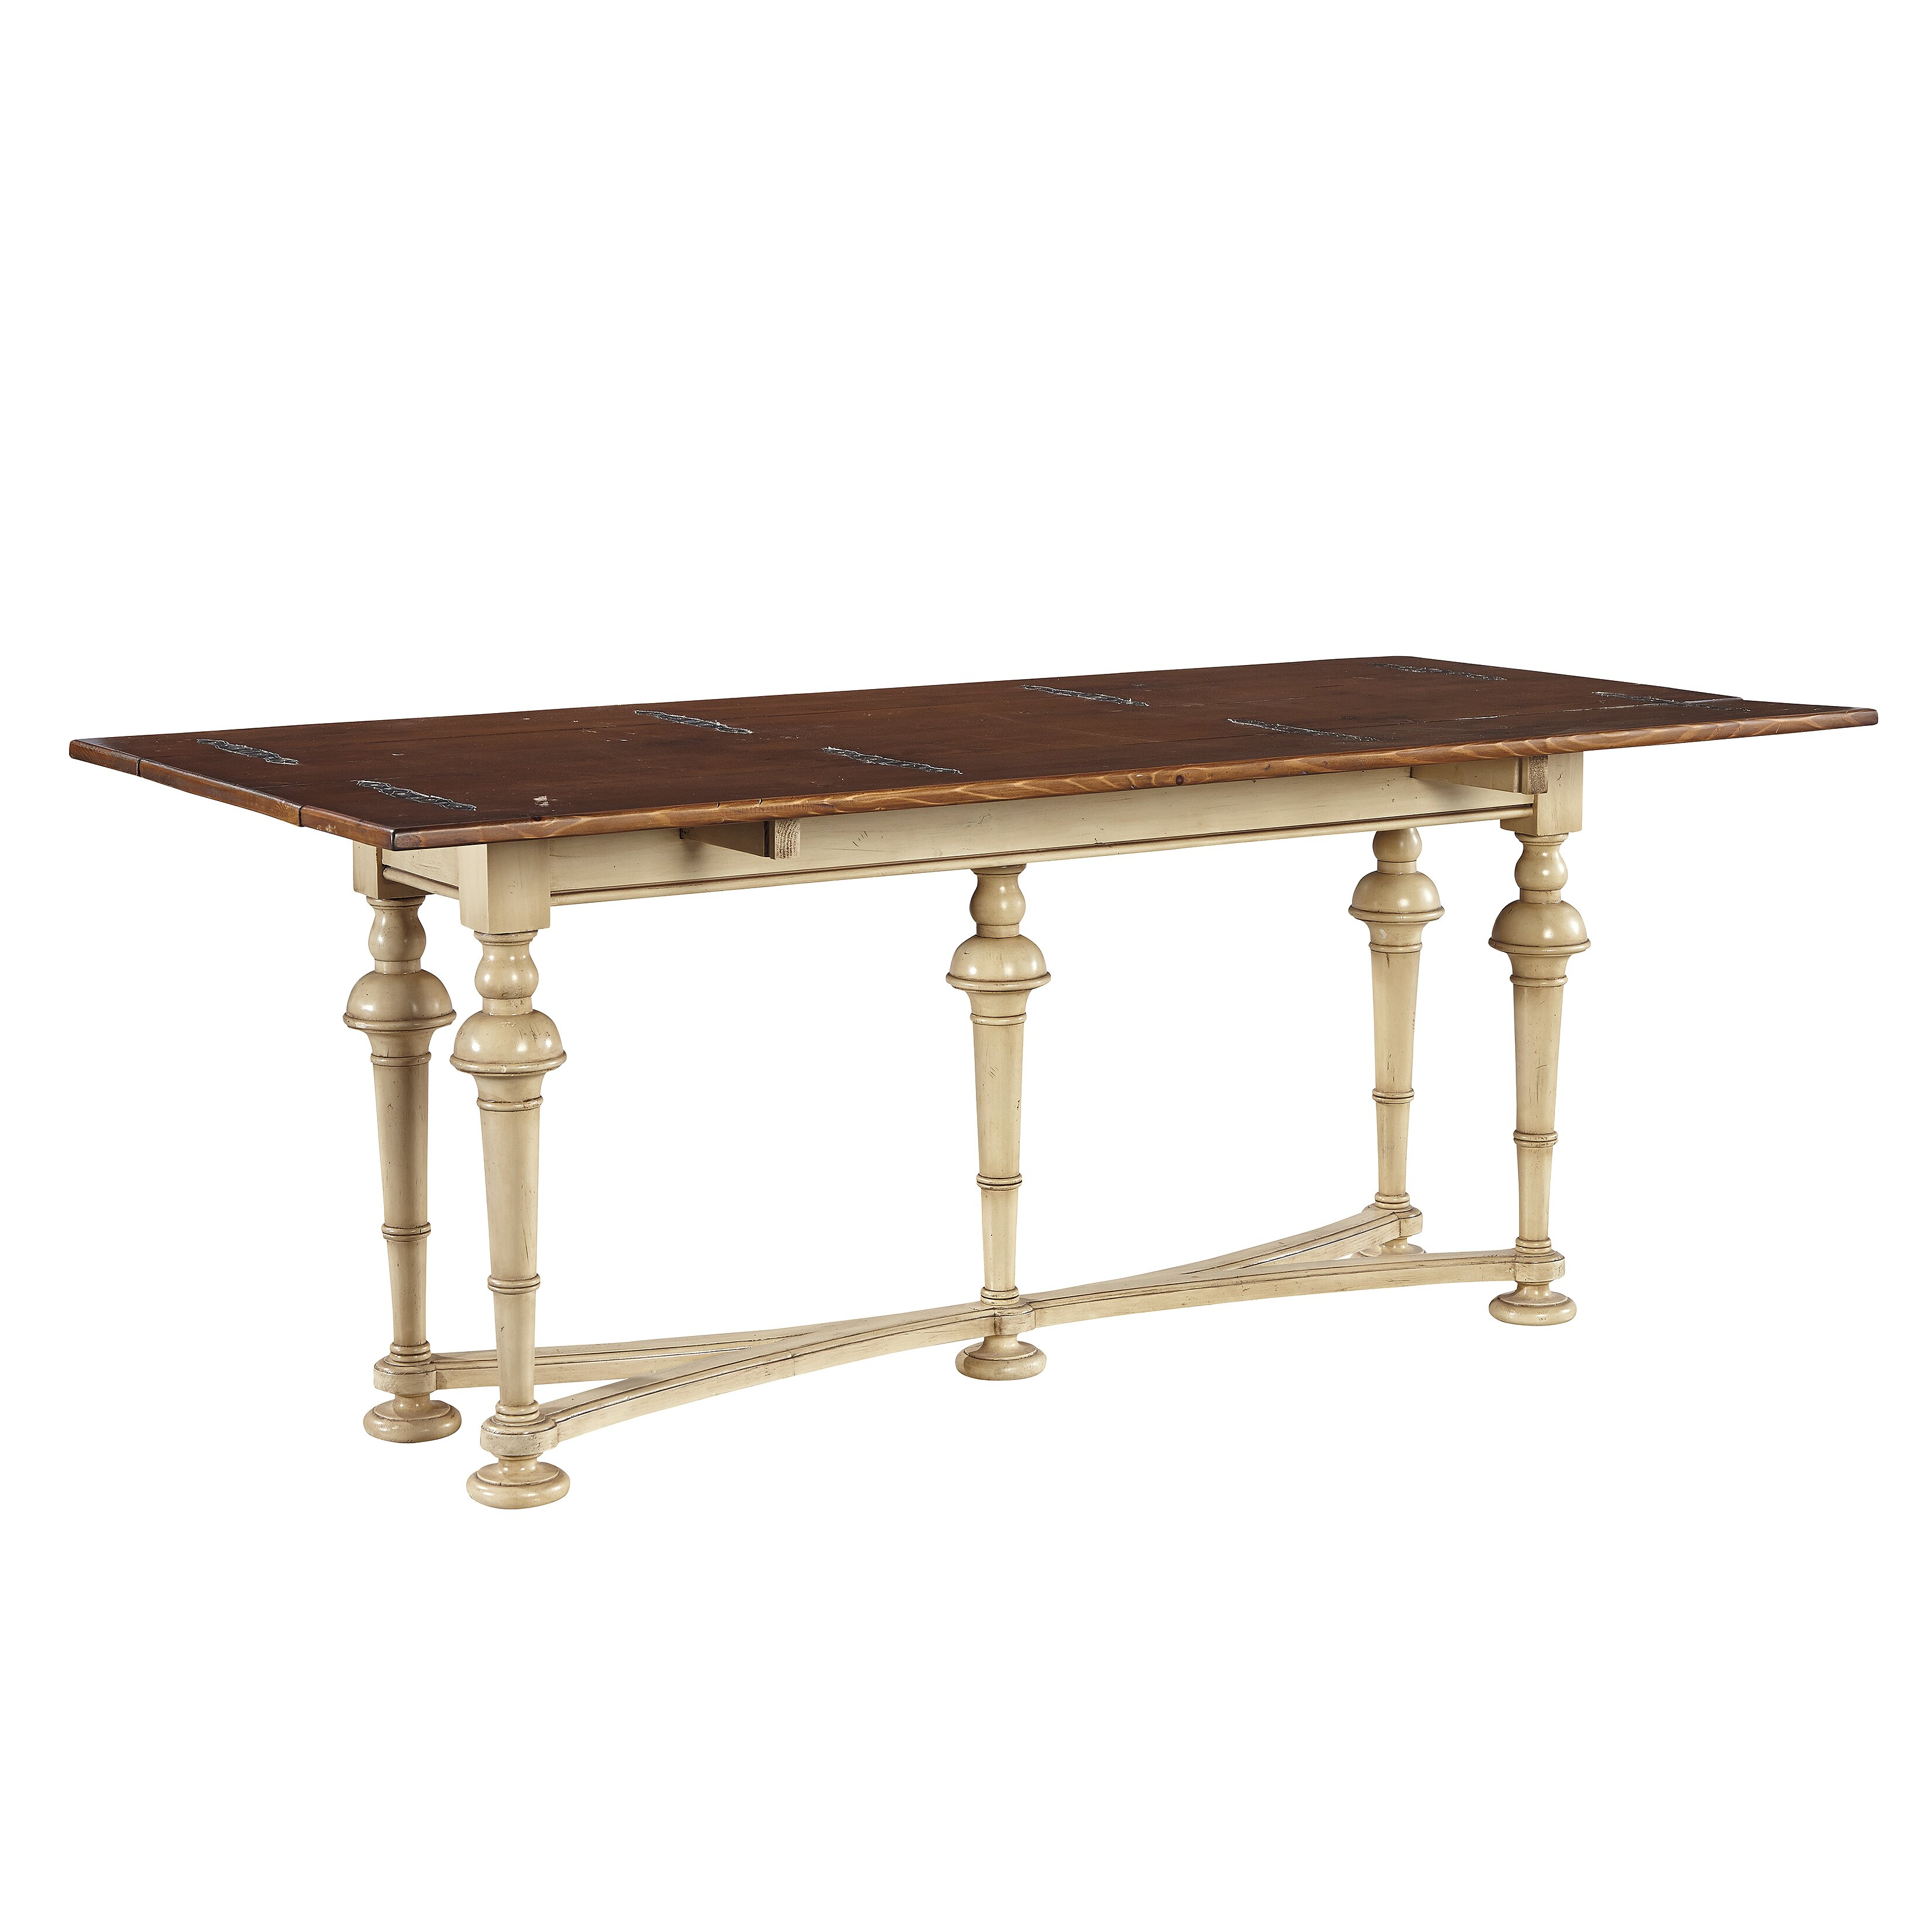 Furniture classics ltd dining table reviews wayfair for Wayfair furniture dining tables